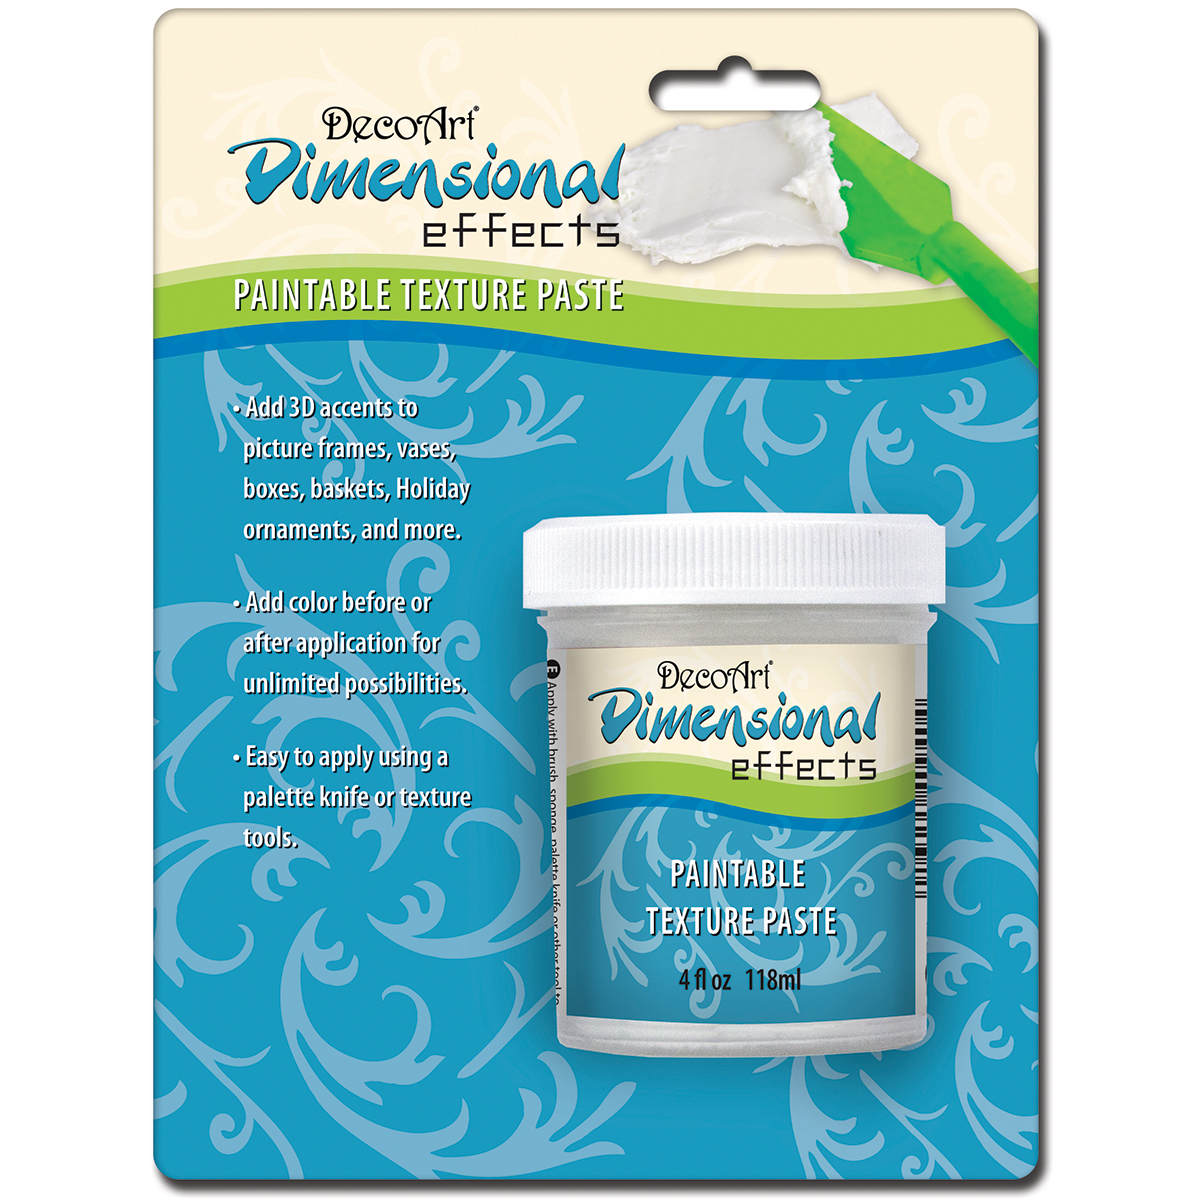 DecoArt Dimensional Effects Texture Paste Carded White